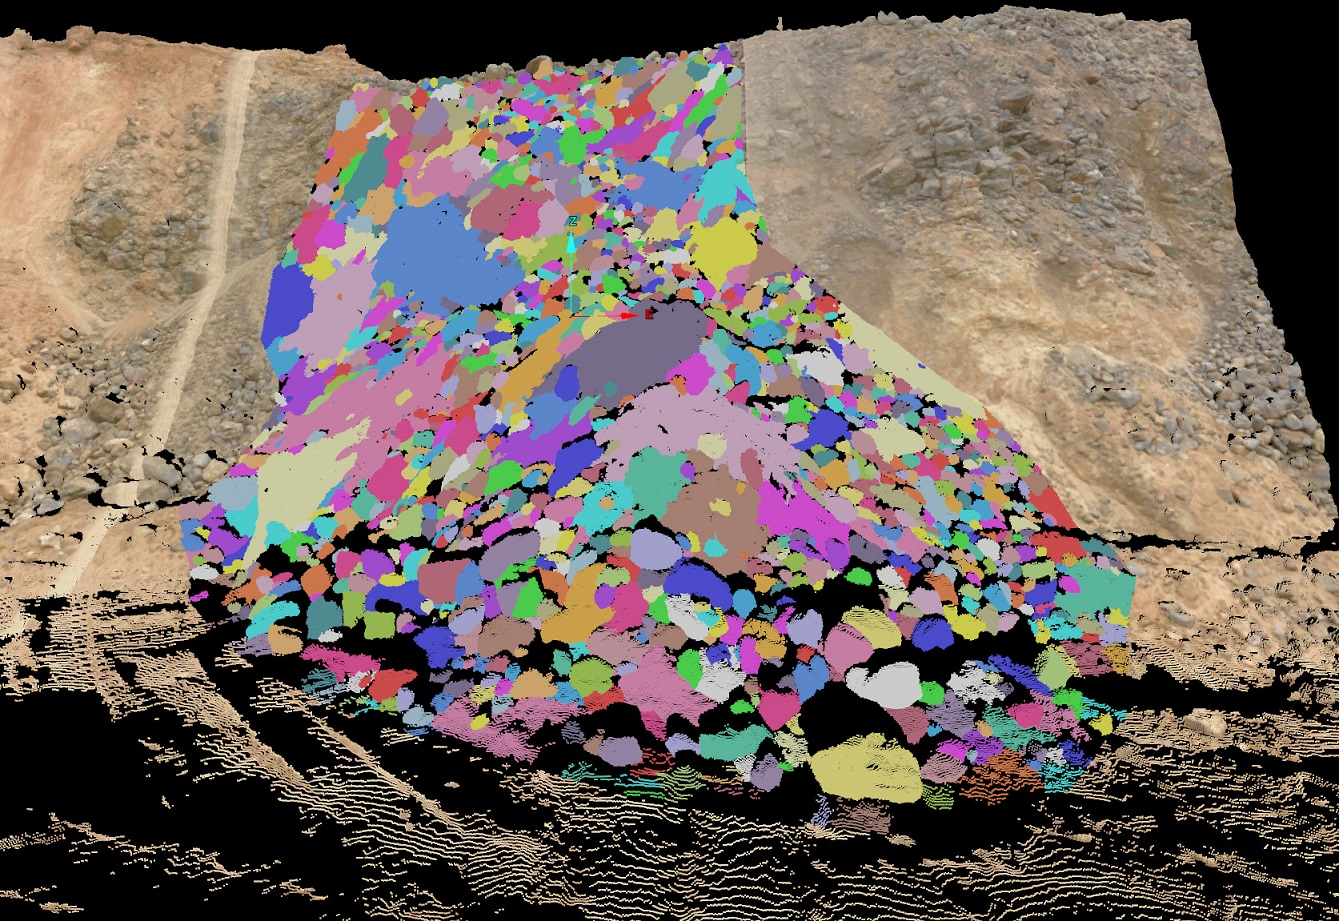 The new tool enables rapid assessment of the condition of blasted rock